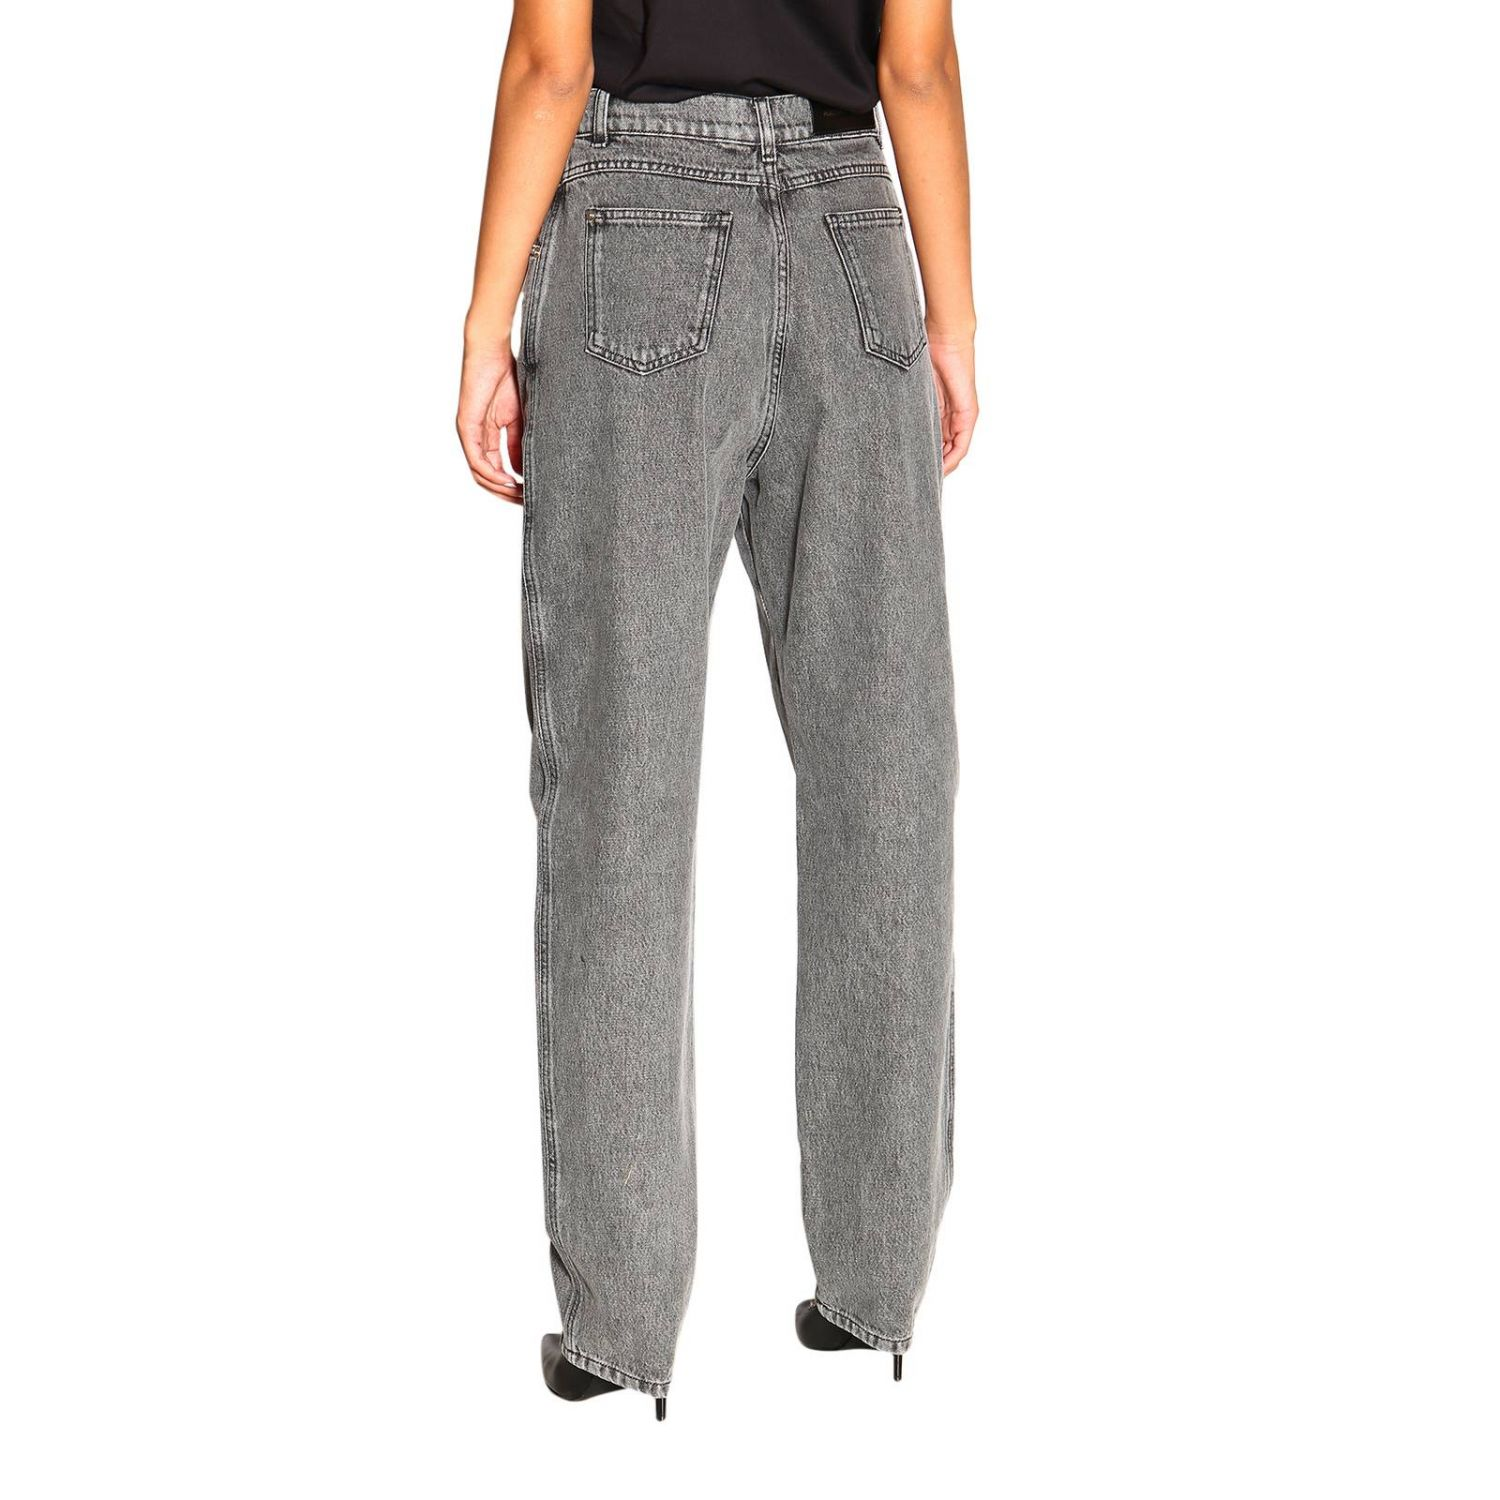 Jeans Alberta Ferretti: Alberta Ferretti high waisted jeans in used effect denim grey 3